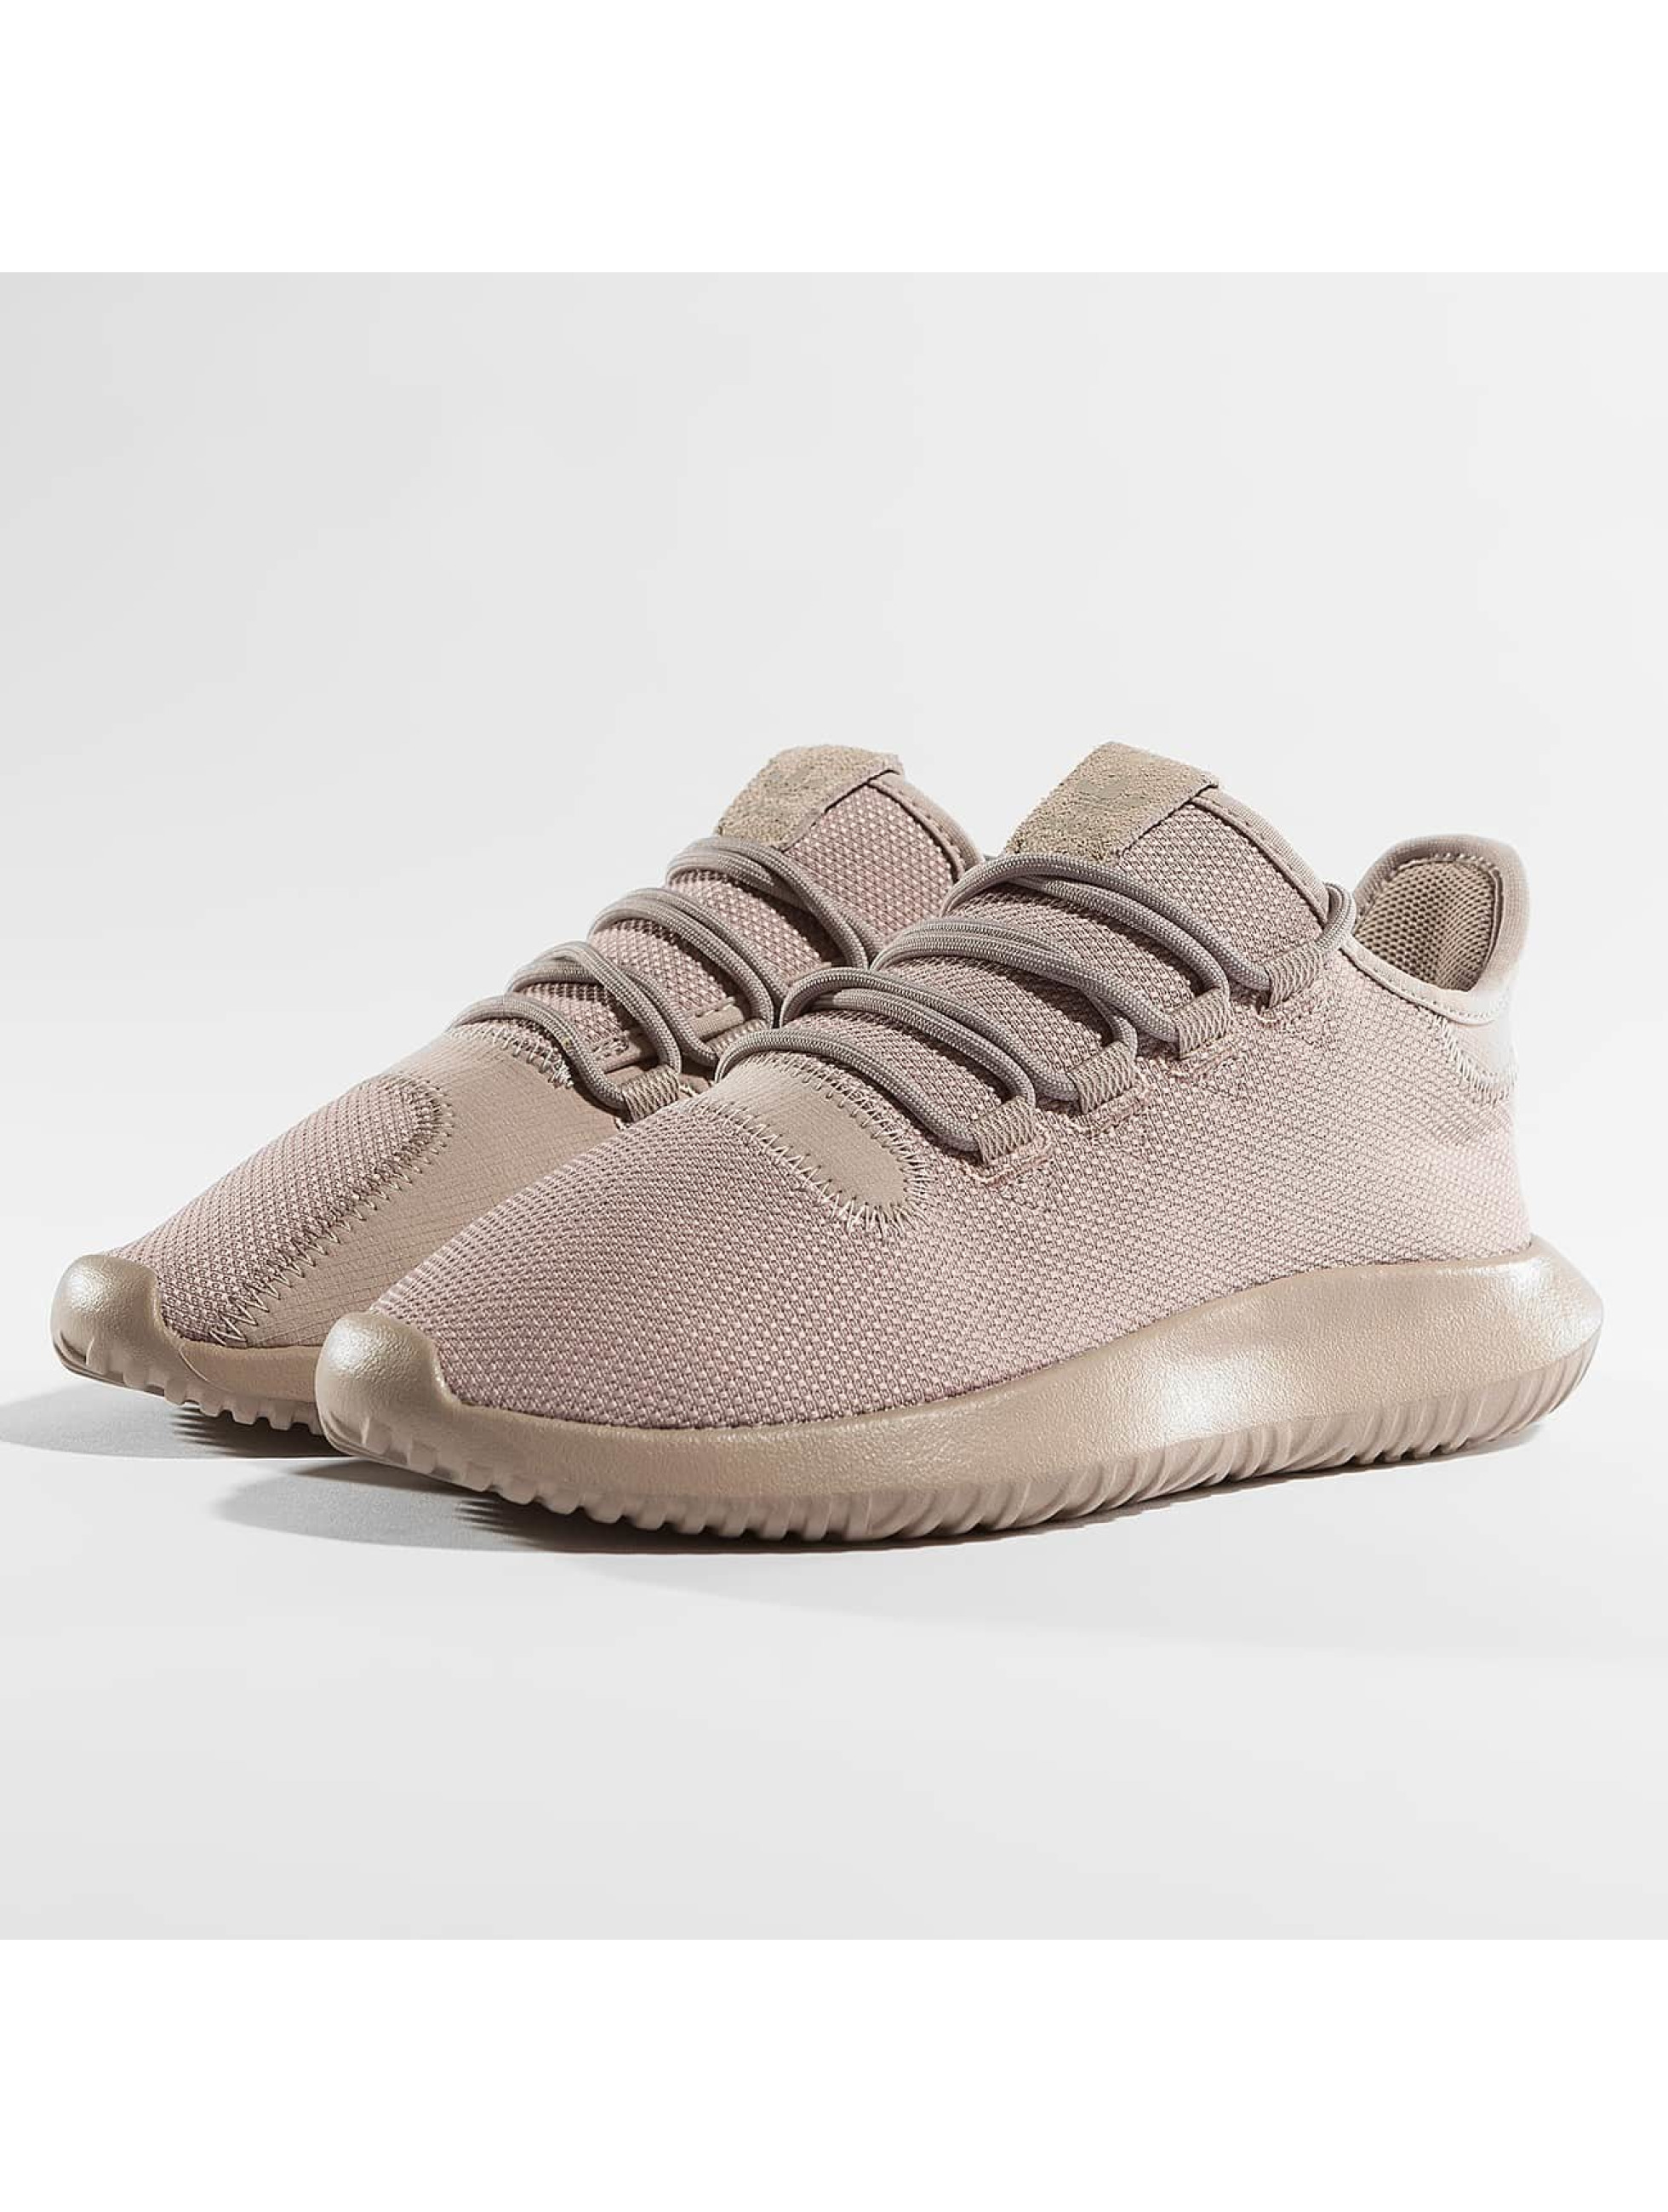 adidas Kinder Sneaker Tubular Shadow J in rosa